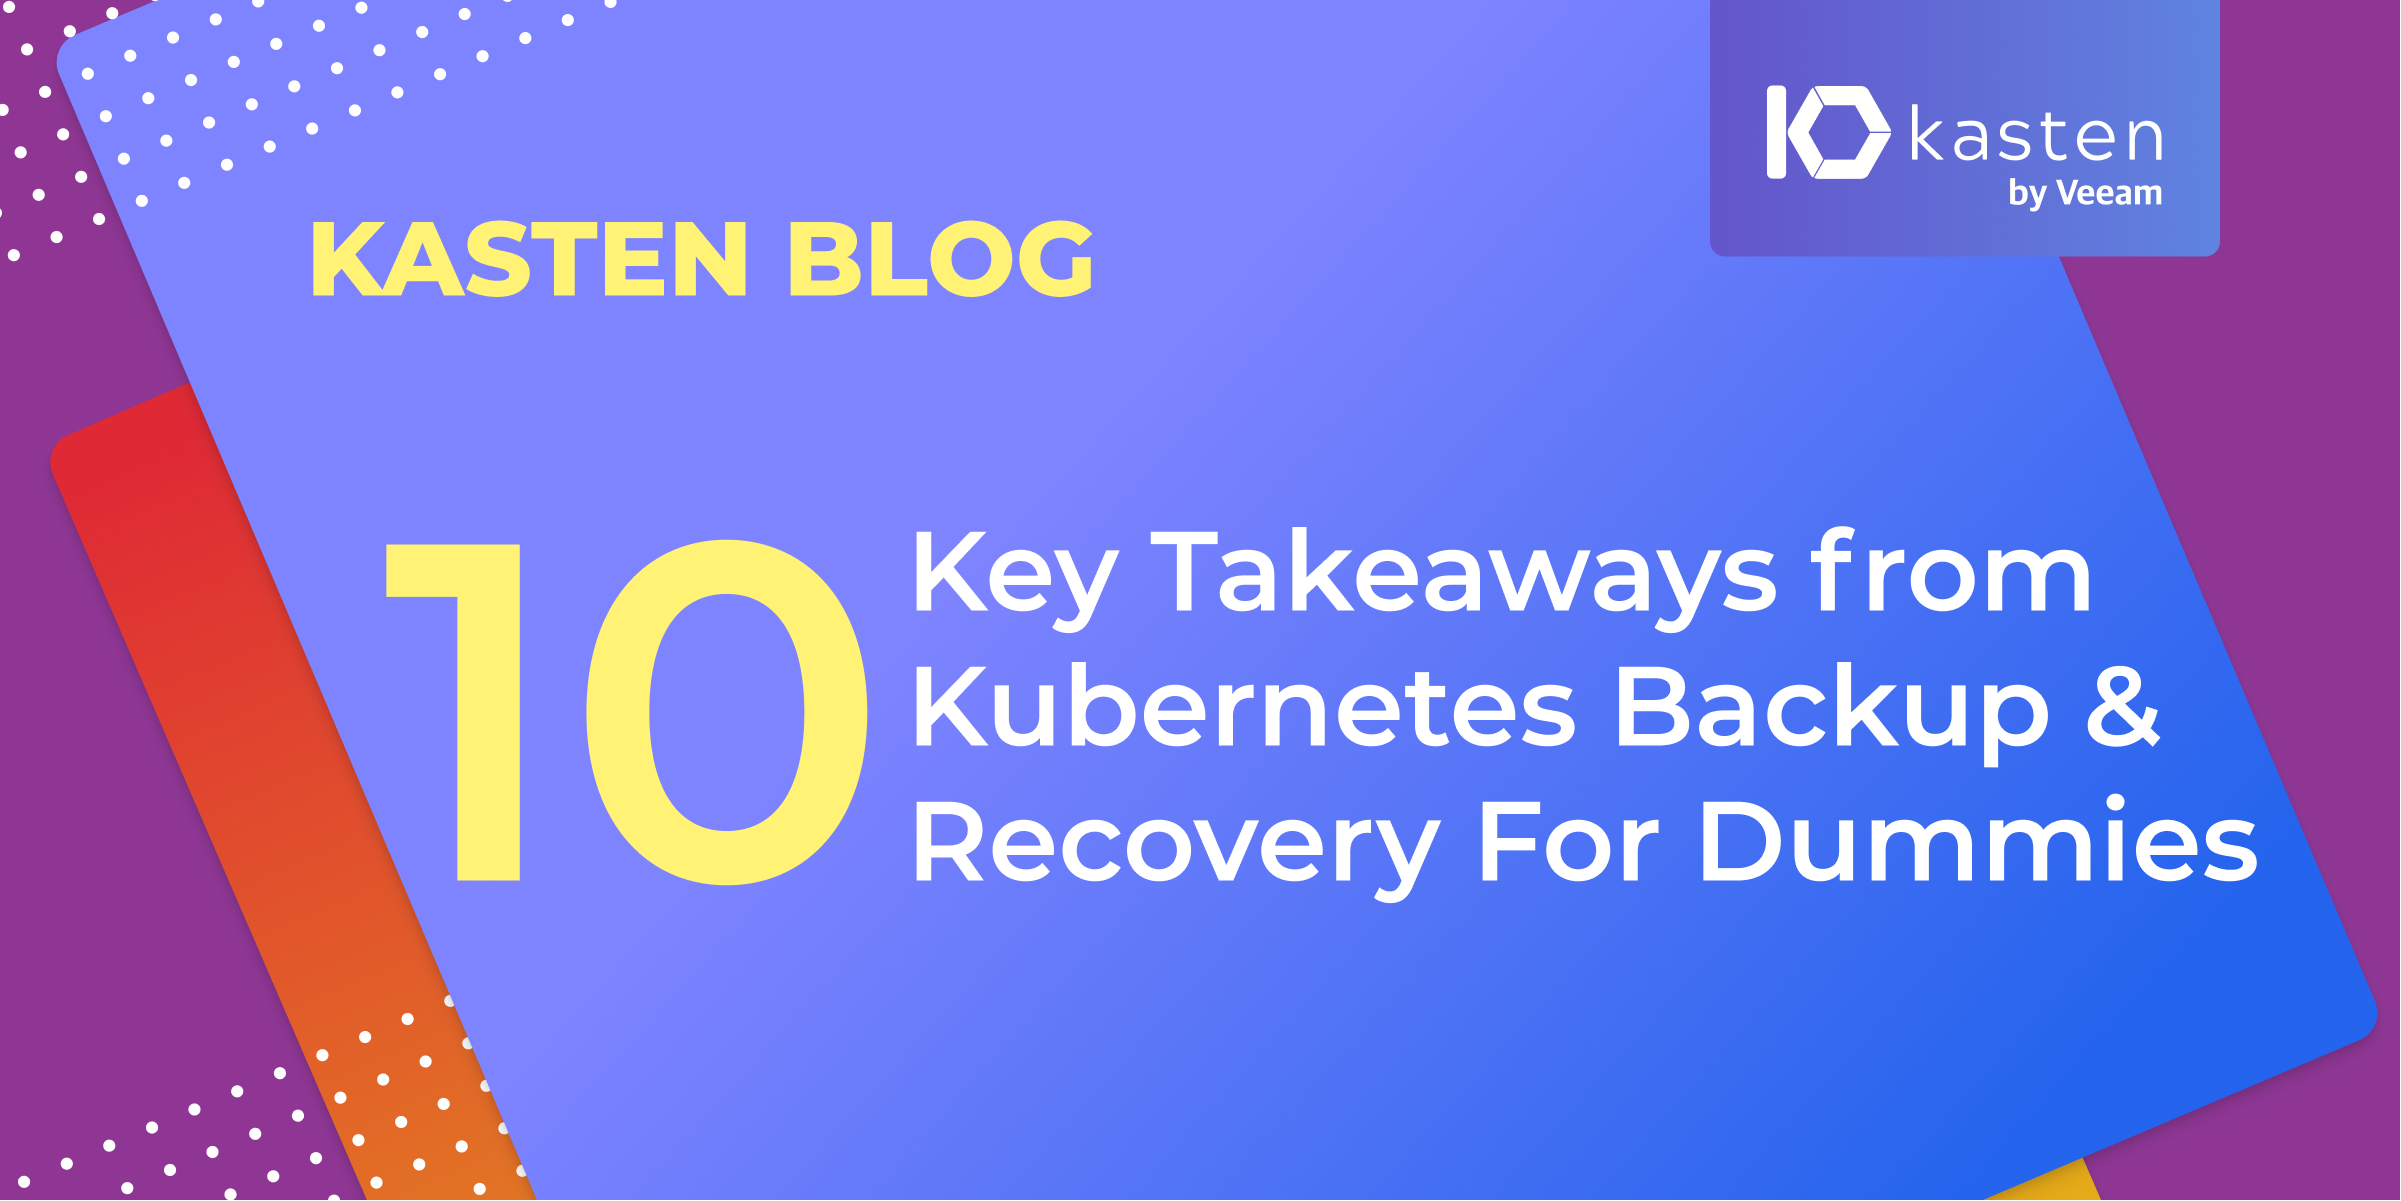 10 Key Takeaways from Kubernetes Backup & Recovery For Dummies